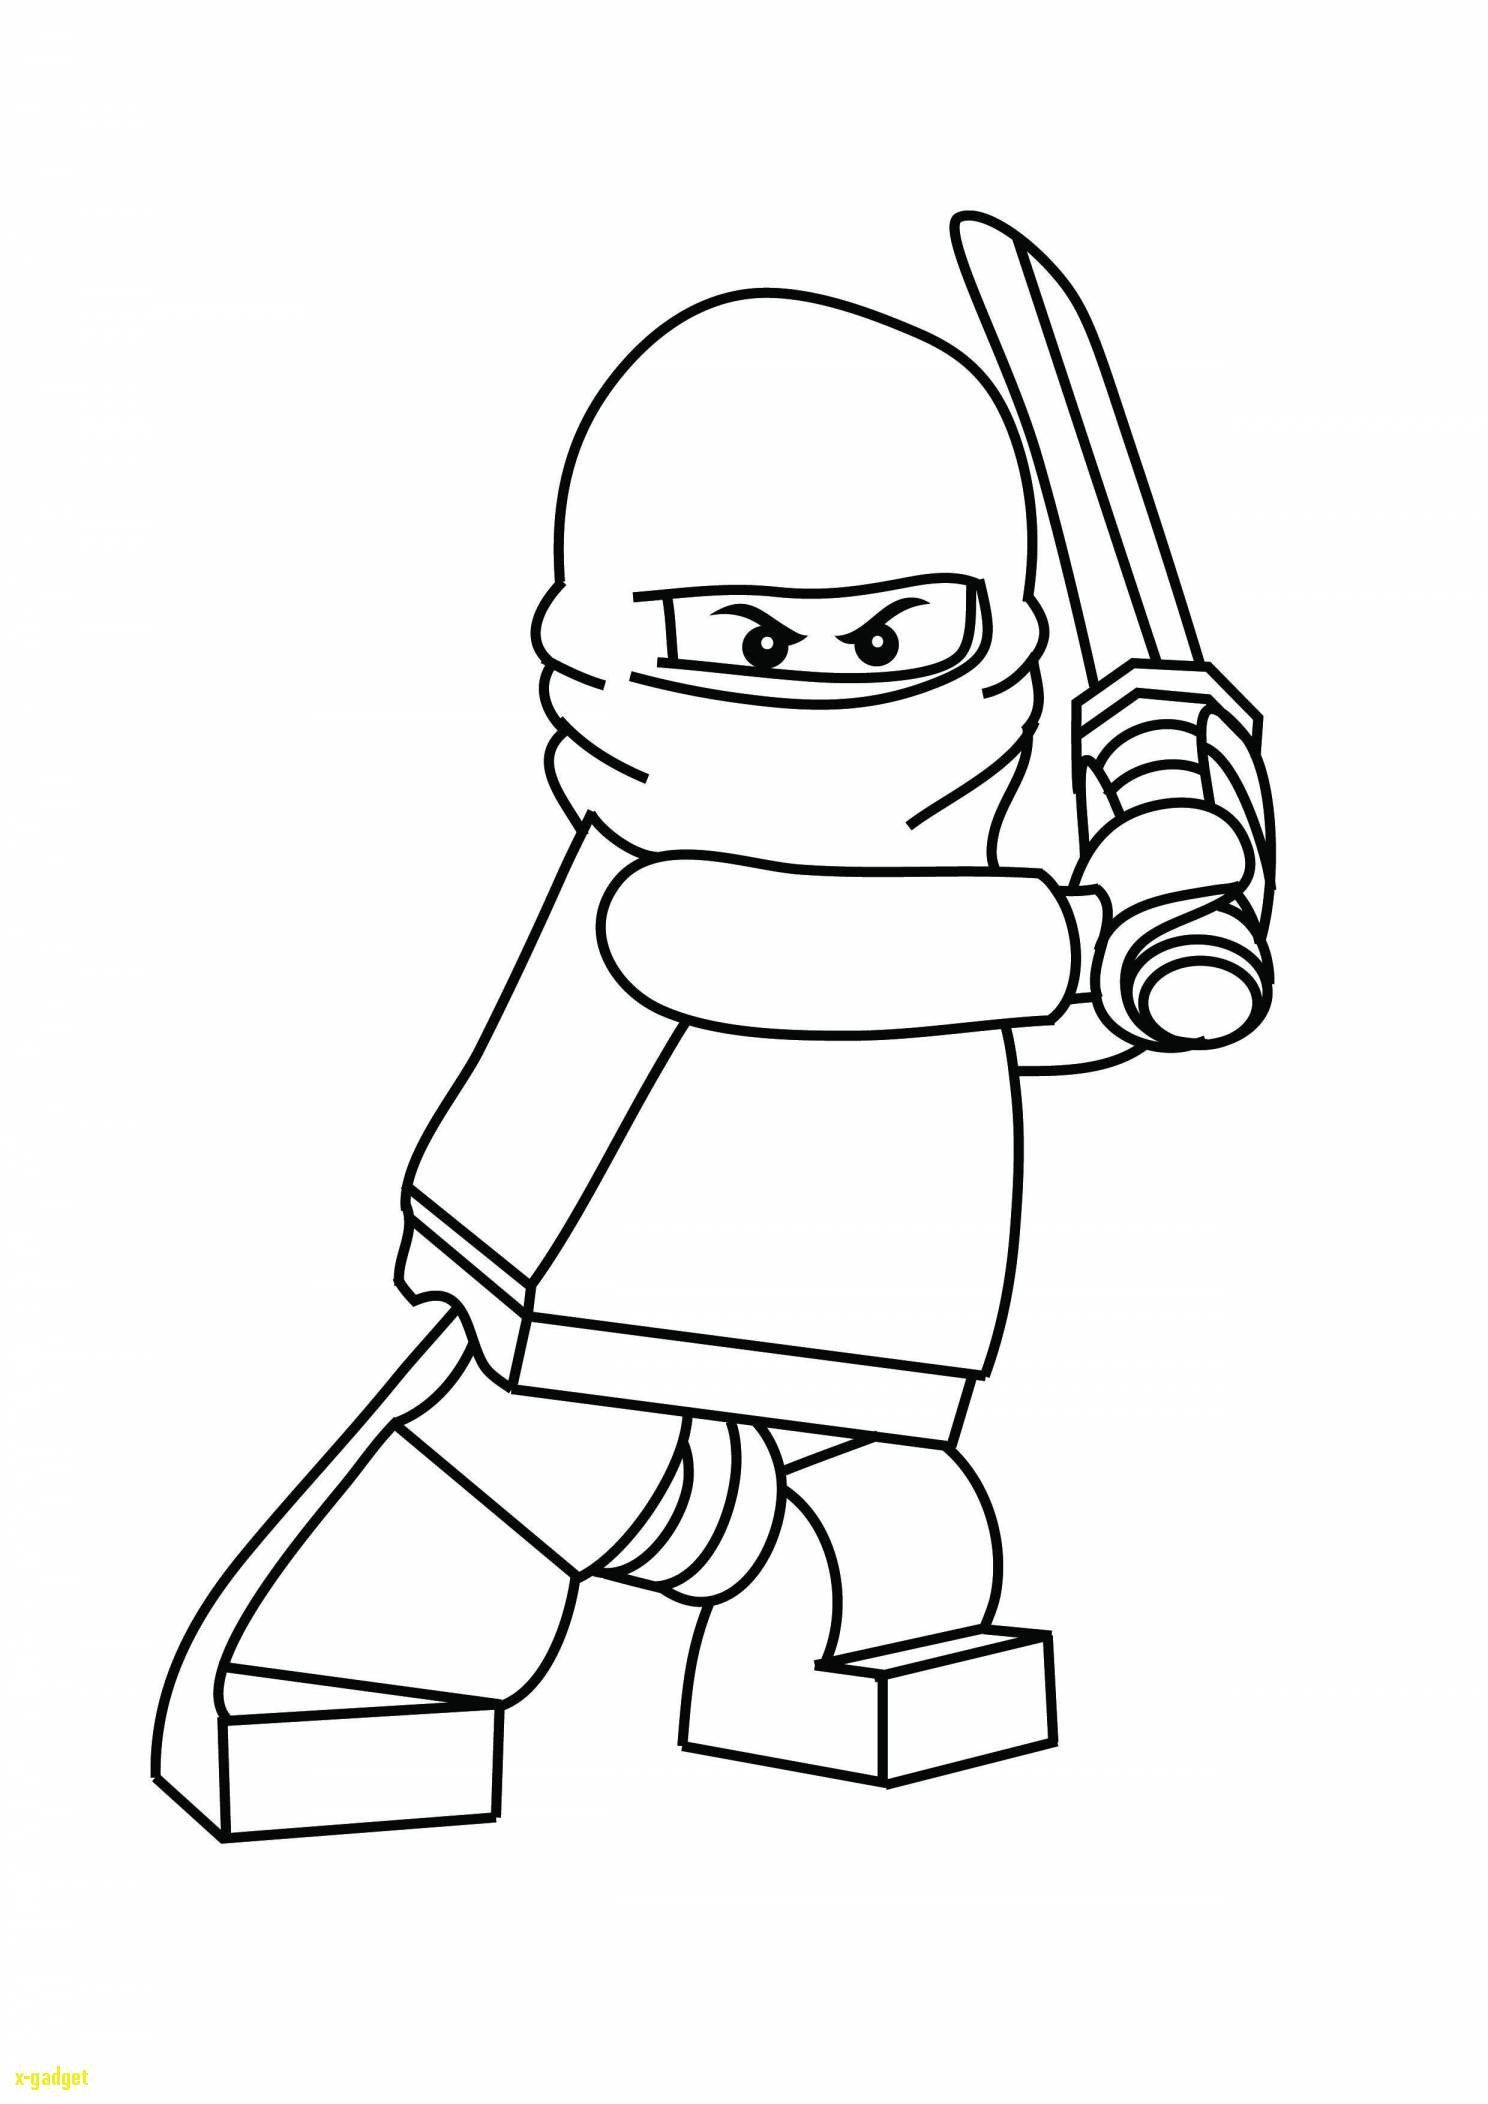 Lego Easter Coloring Pages In 2020 Lego Coloring Pages Lego Coloring Ninjago Coloring Pages